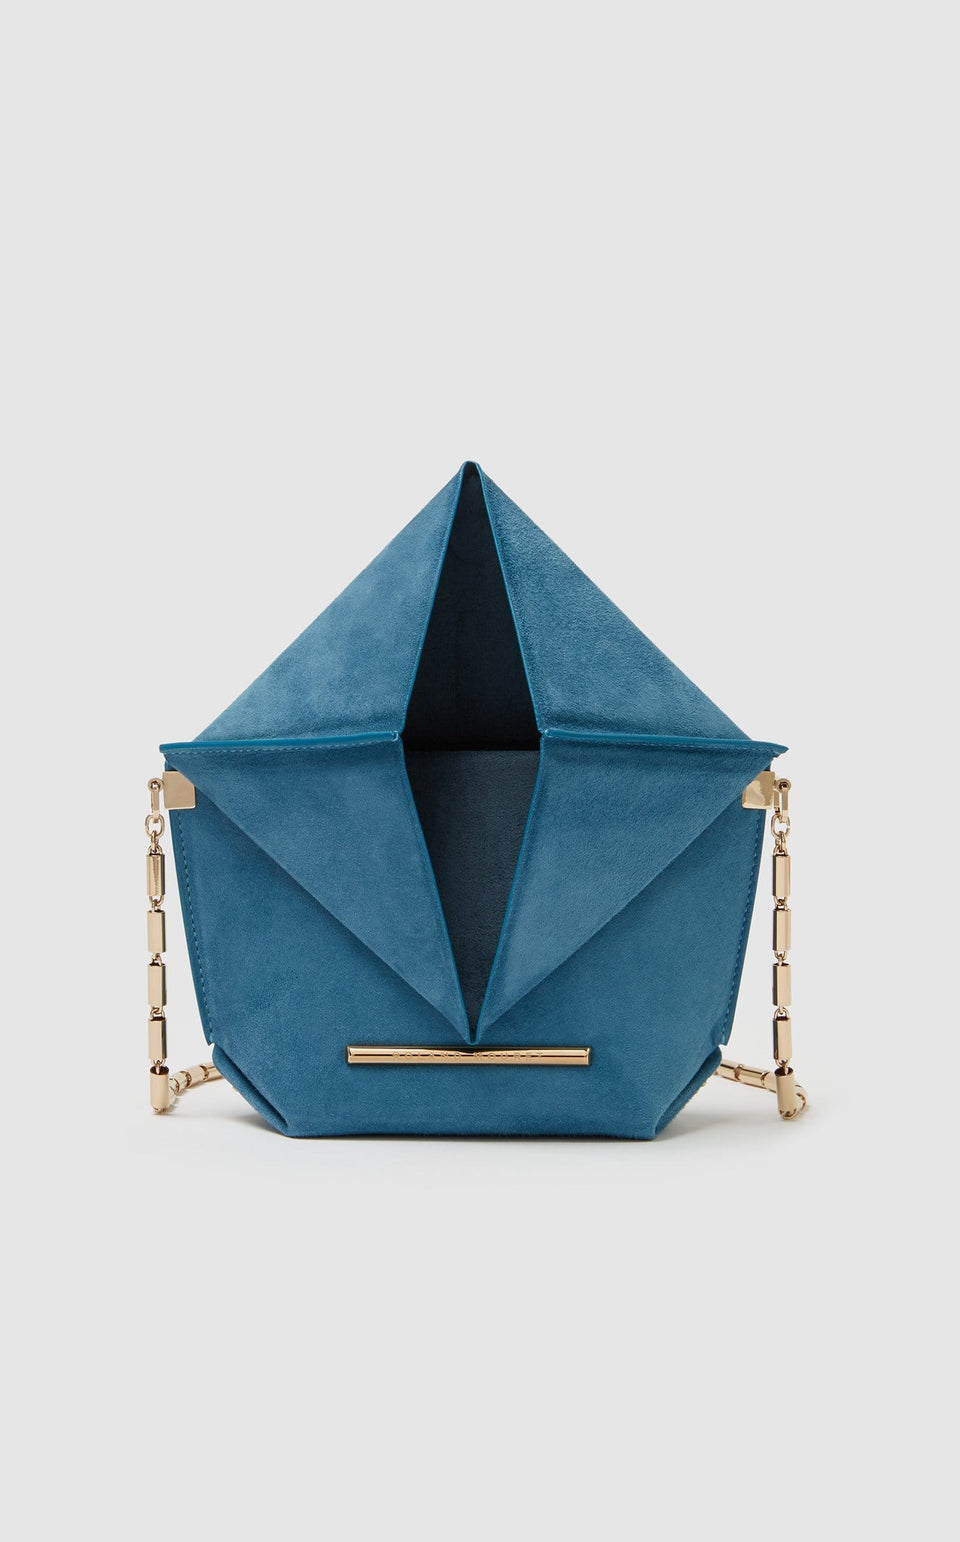 Mini Classico Bag In Cornflower blue from Roland Mouret